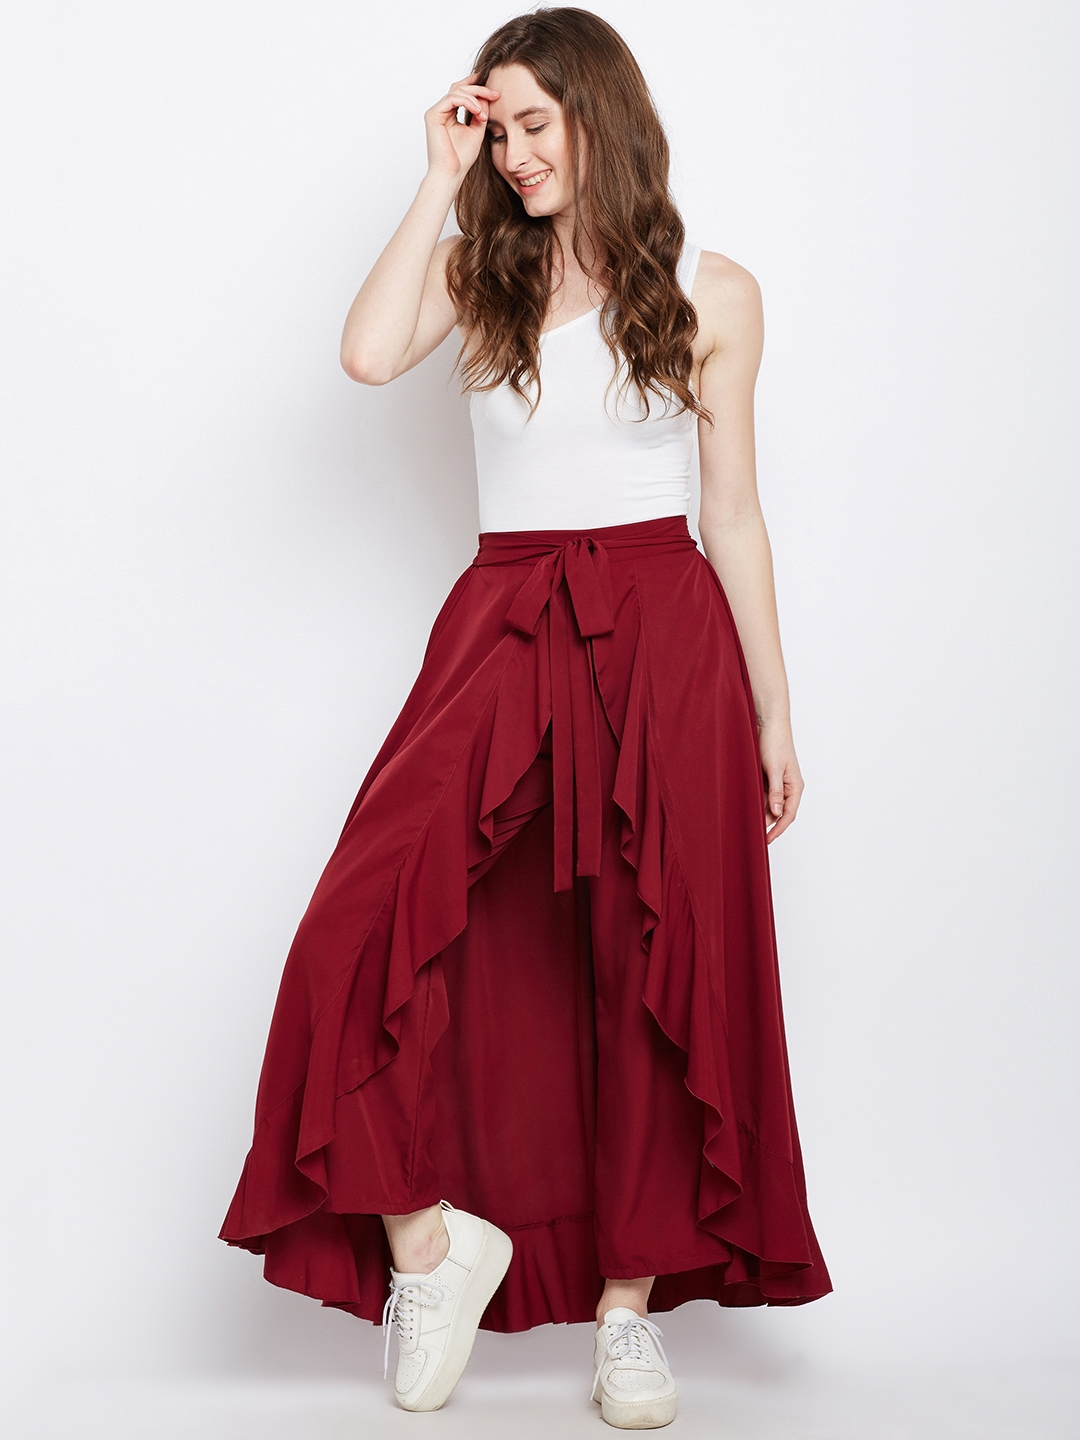 cf90101fe11 Berrylush Maroon Solid Ruffled Flared Maxi Skirt with Attached Trousers